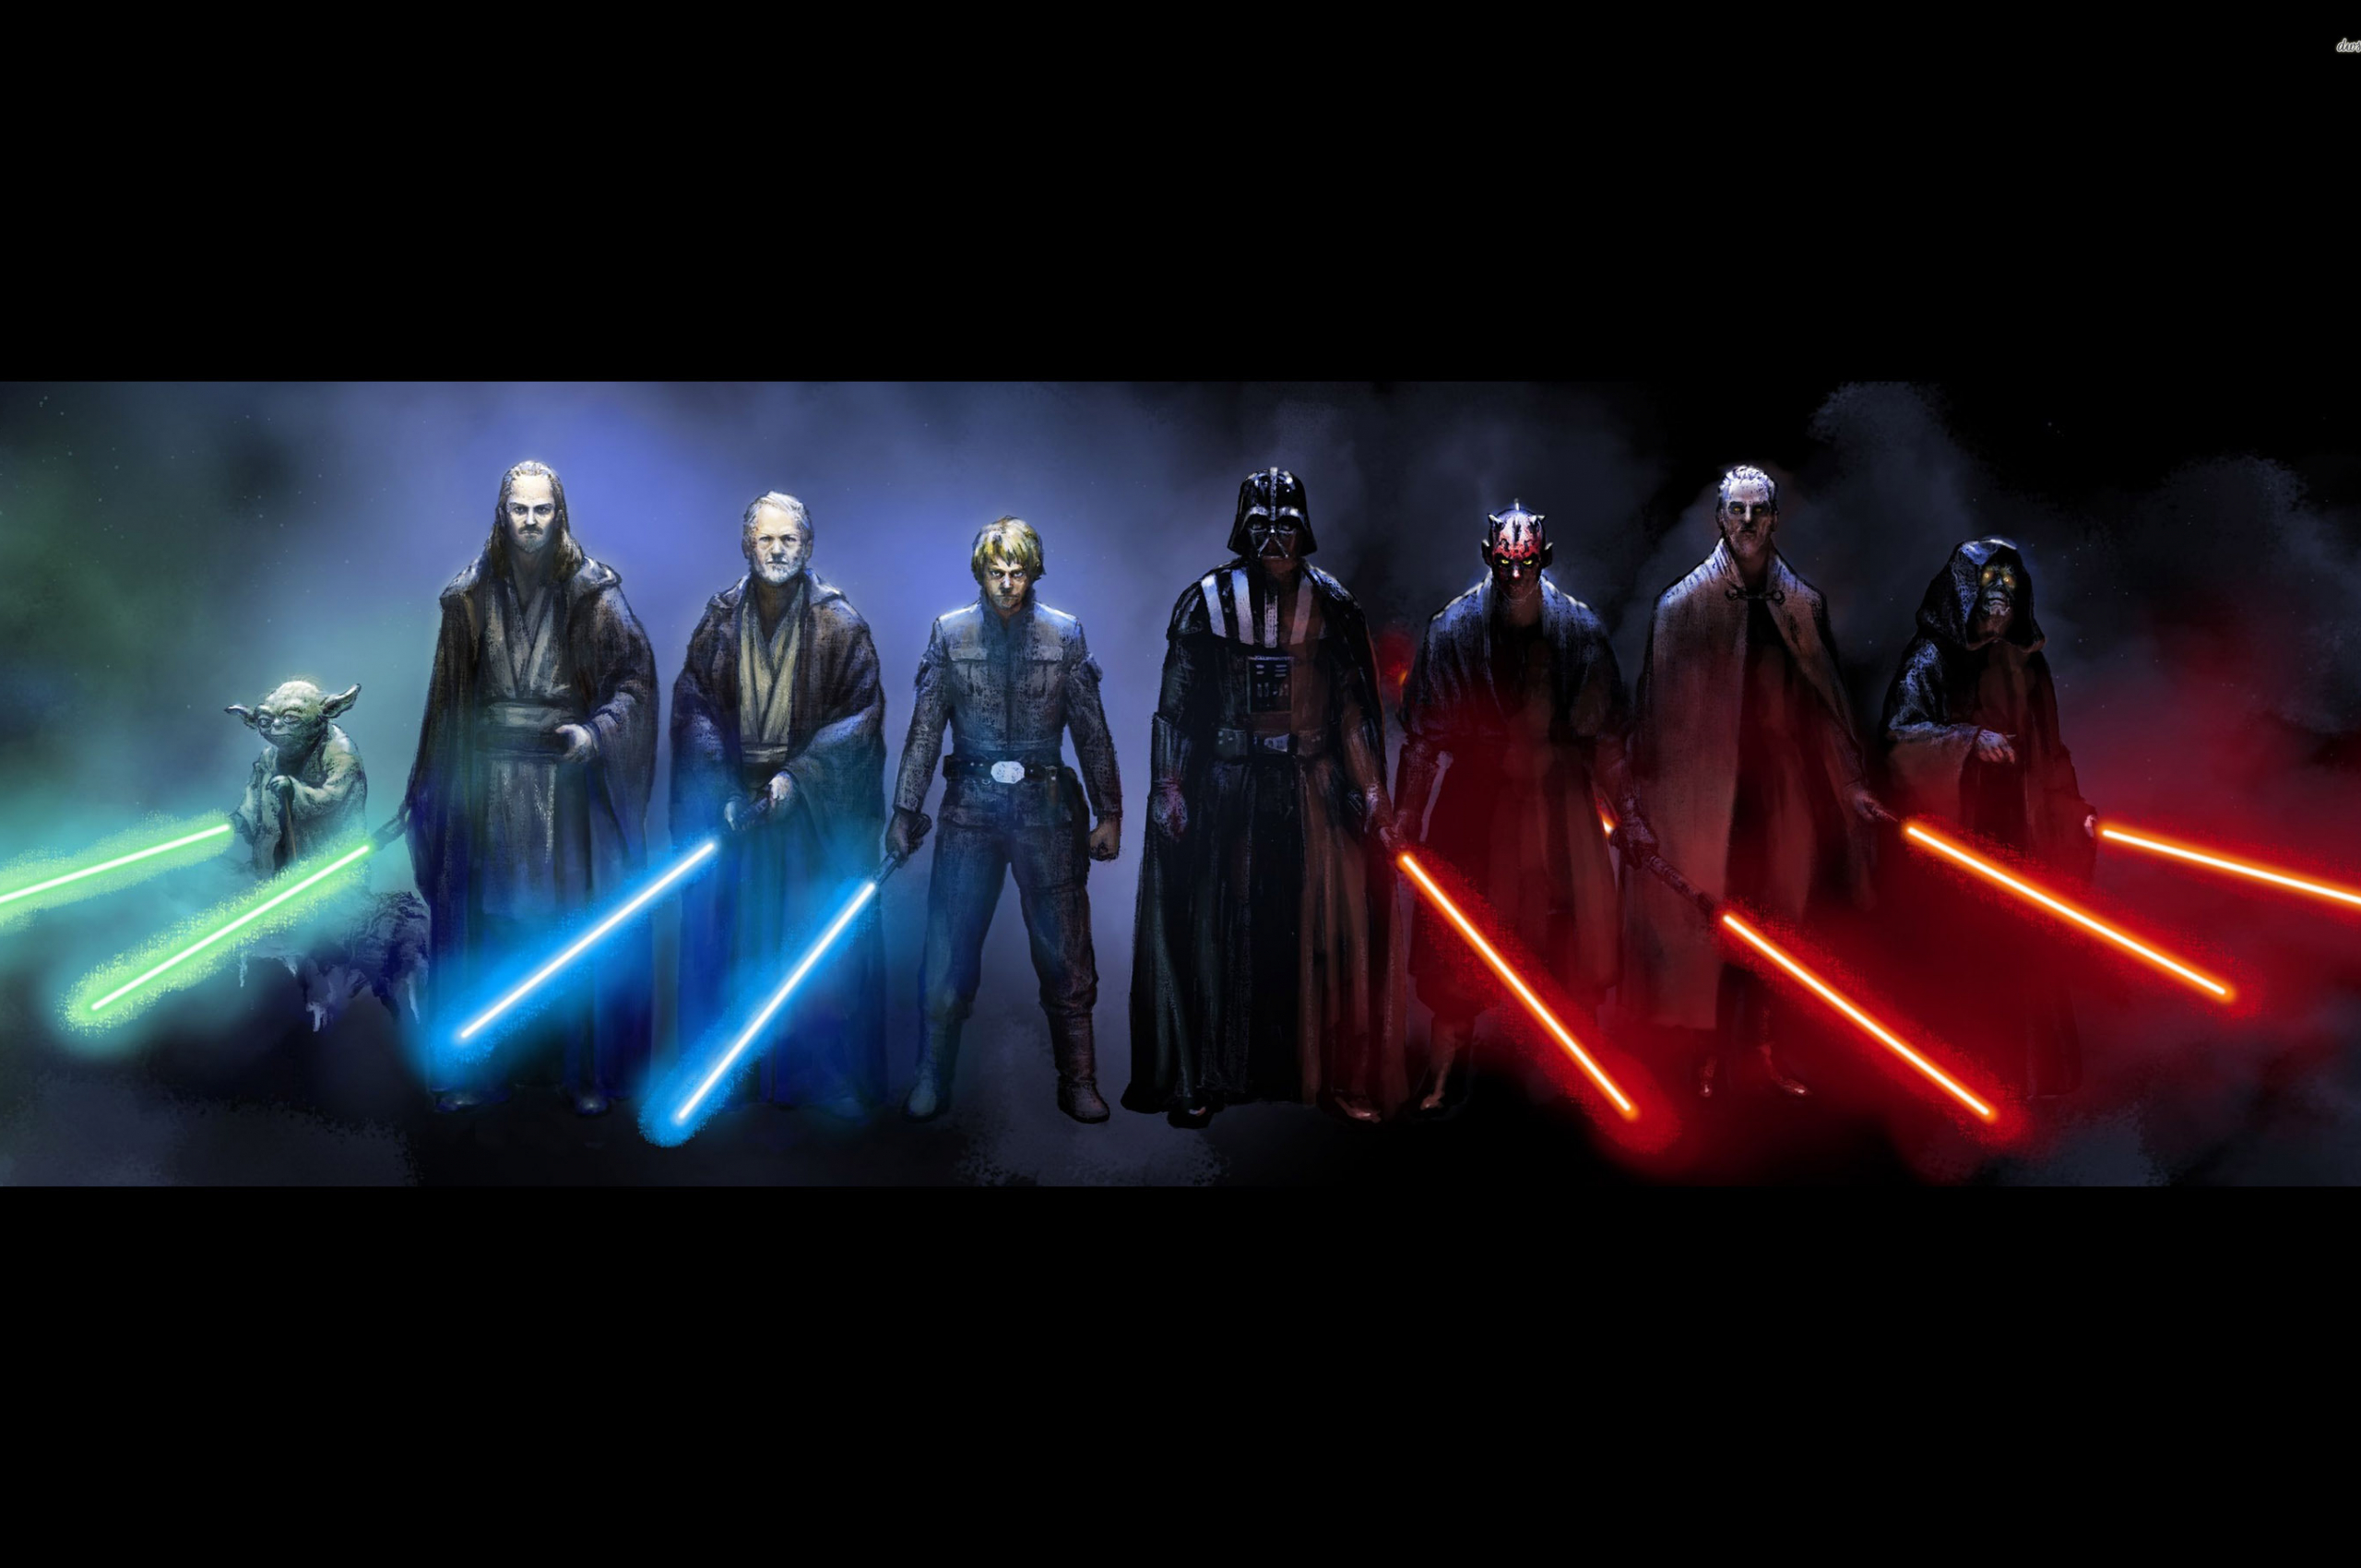 Free Download Jedi And Sith Star Wars Wallpaper 972103 2880x1800 For Your Desktop Mobile Tablet Explore 48 Star Wars Sith Lords Wallpaper Sith Symbol Wallpaper Best Sith Wallpaper Sith Hd Wallpaper